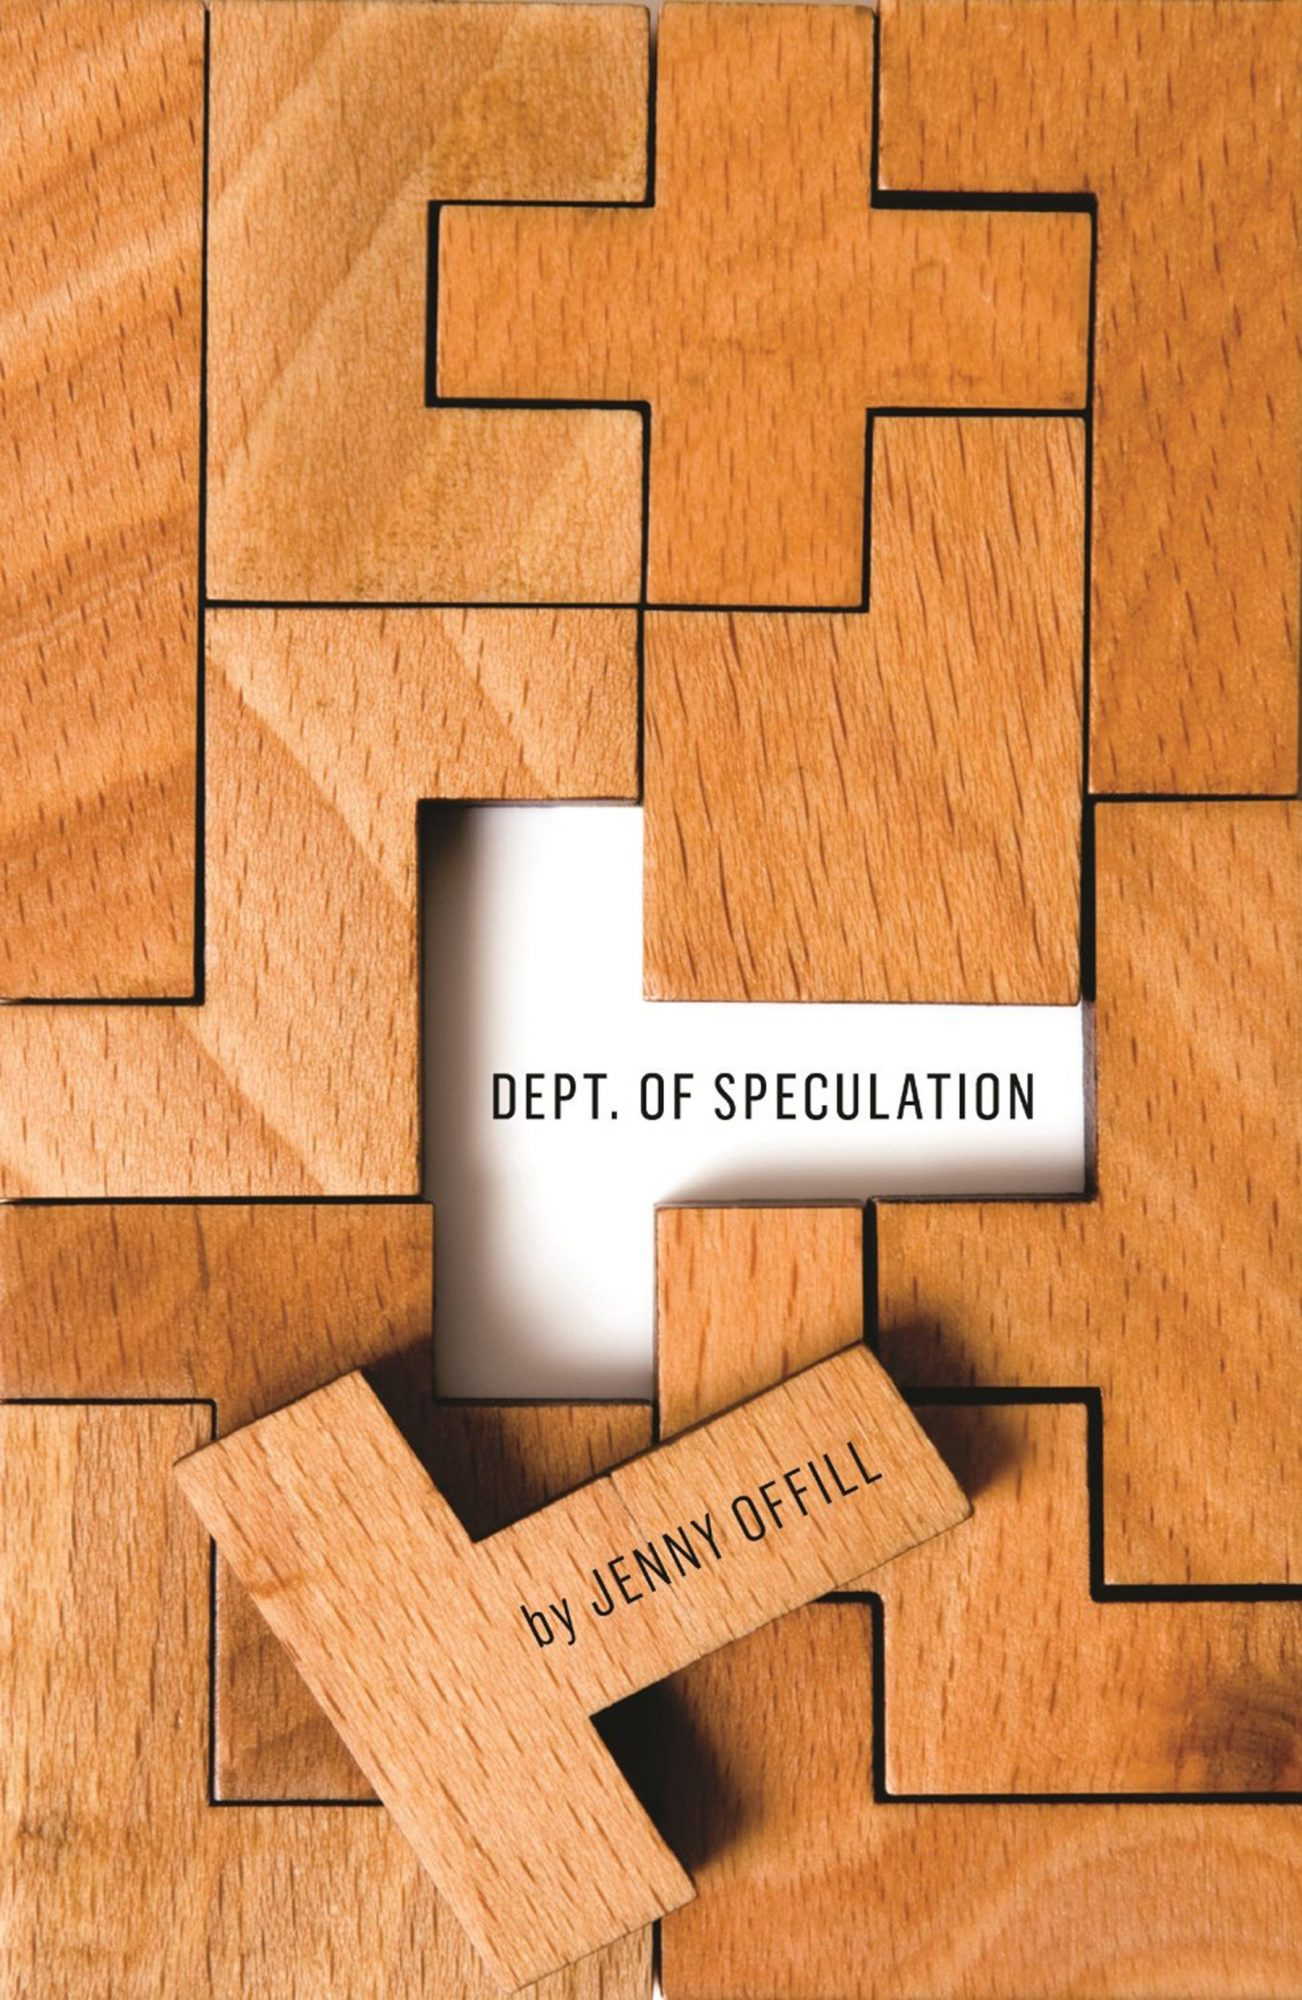 Jenny Offill, Dept. of Speculation